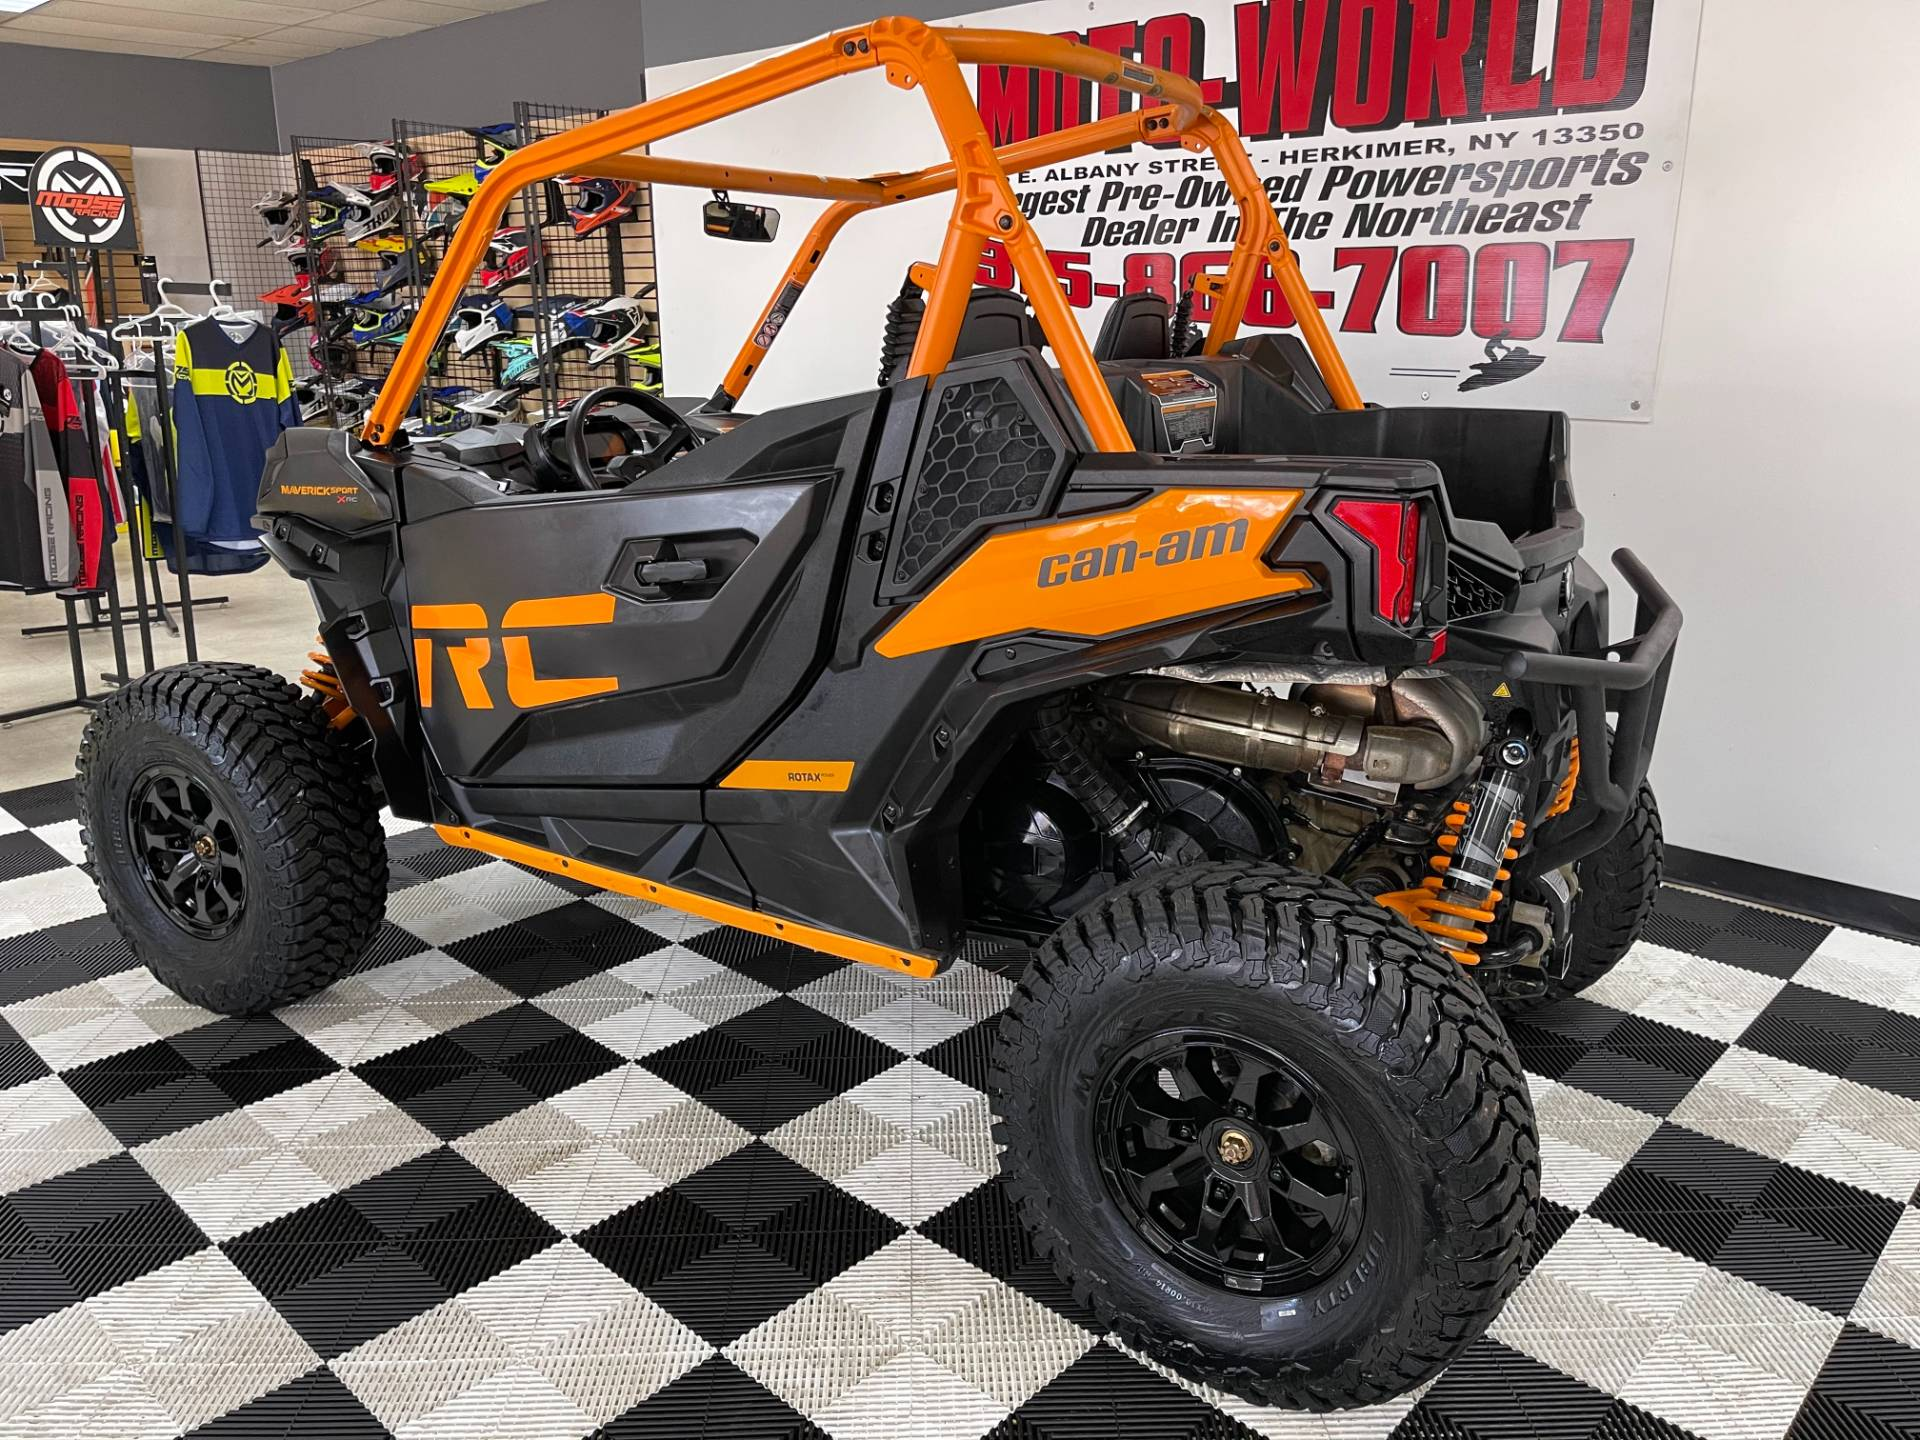 2020 Can-Am Maverick Sport X RC 1000R in Herkimer, New York - Photo 20